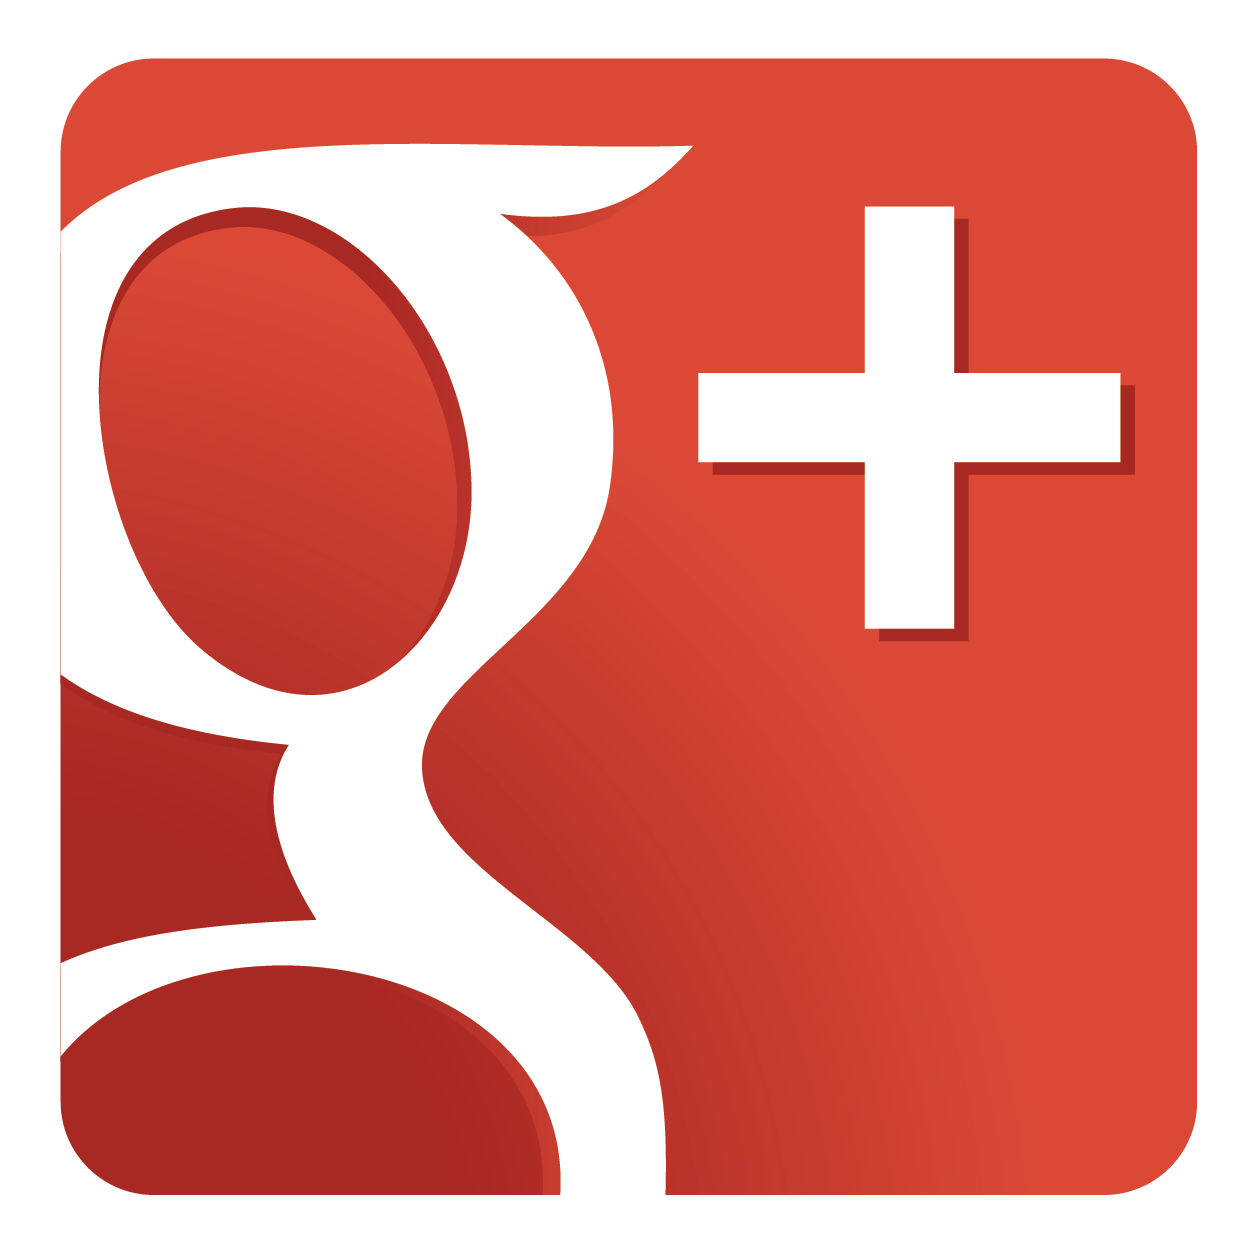 Gorham Tax Services Google+